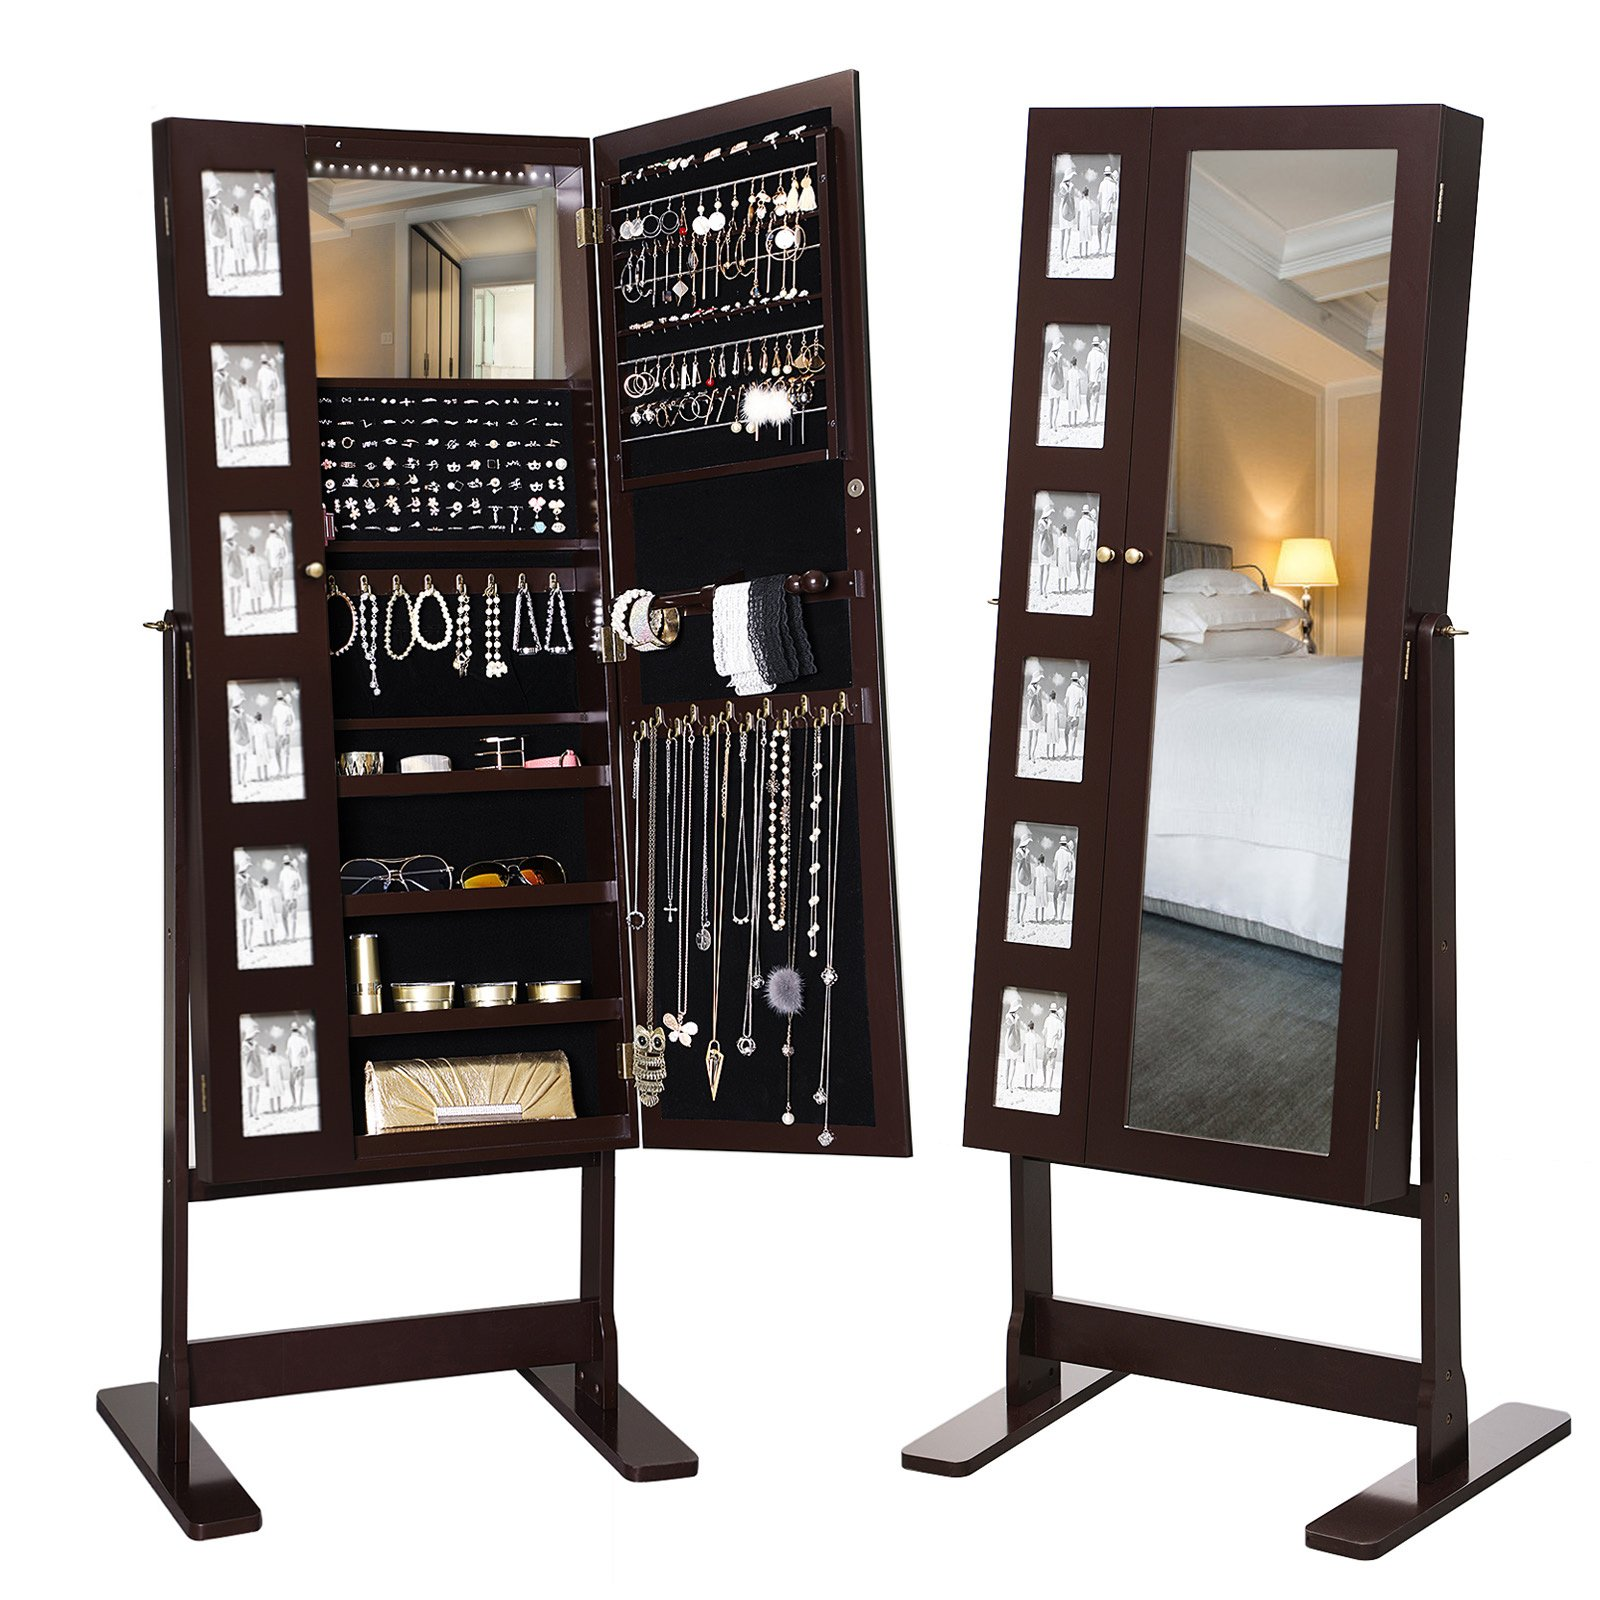 SONGMICS 18 LEDs Jewelry Cabinet Mirrored Standing Jewelry Armoire Organizer with 6 Photo Frames Brown UJJC92K by SONGMICS